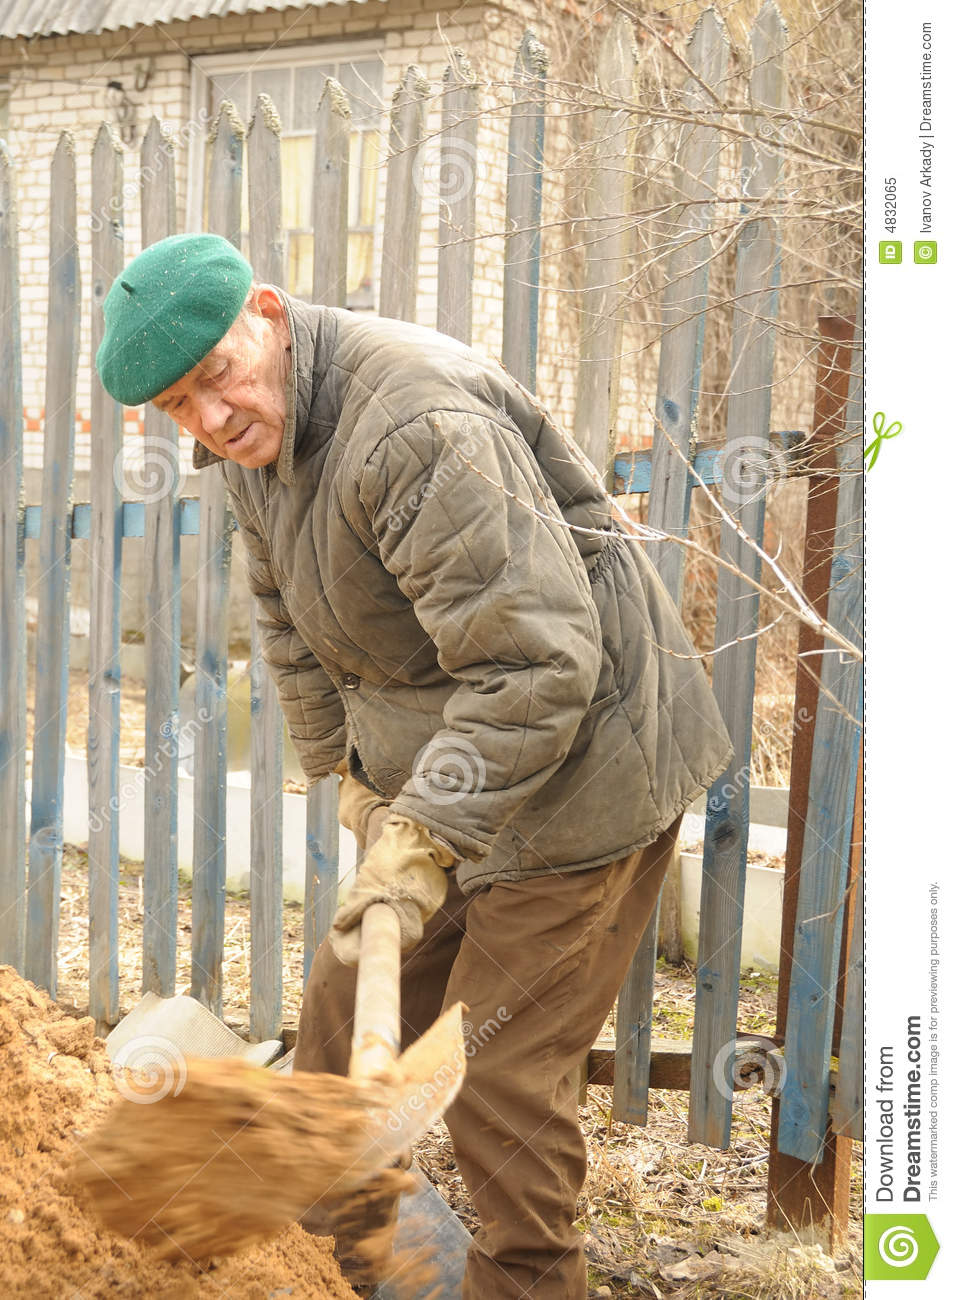 Man digging ground royalty free stock photo image 4832065 for Digging ground dream meaning